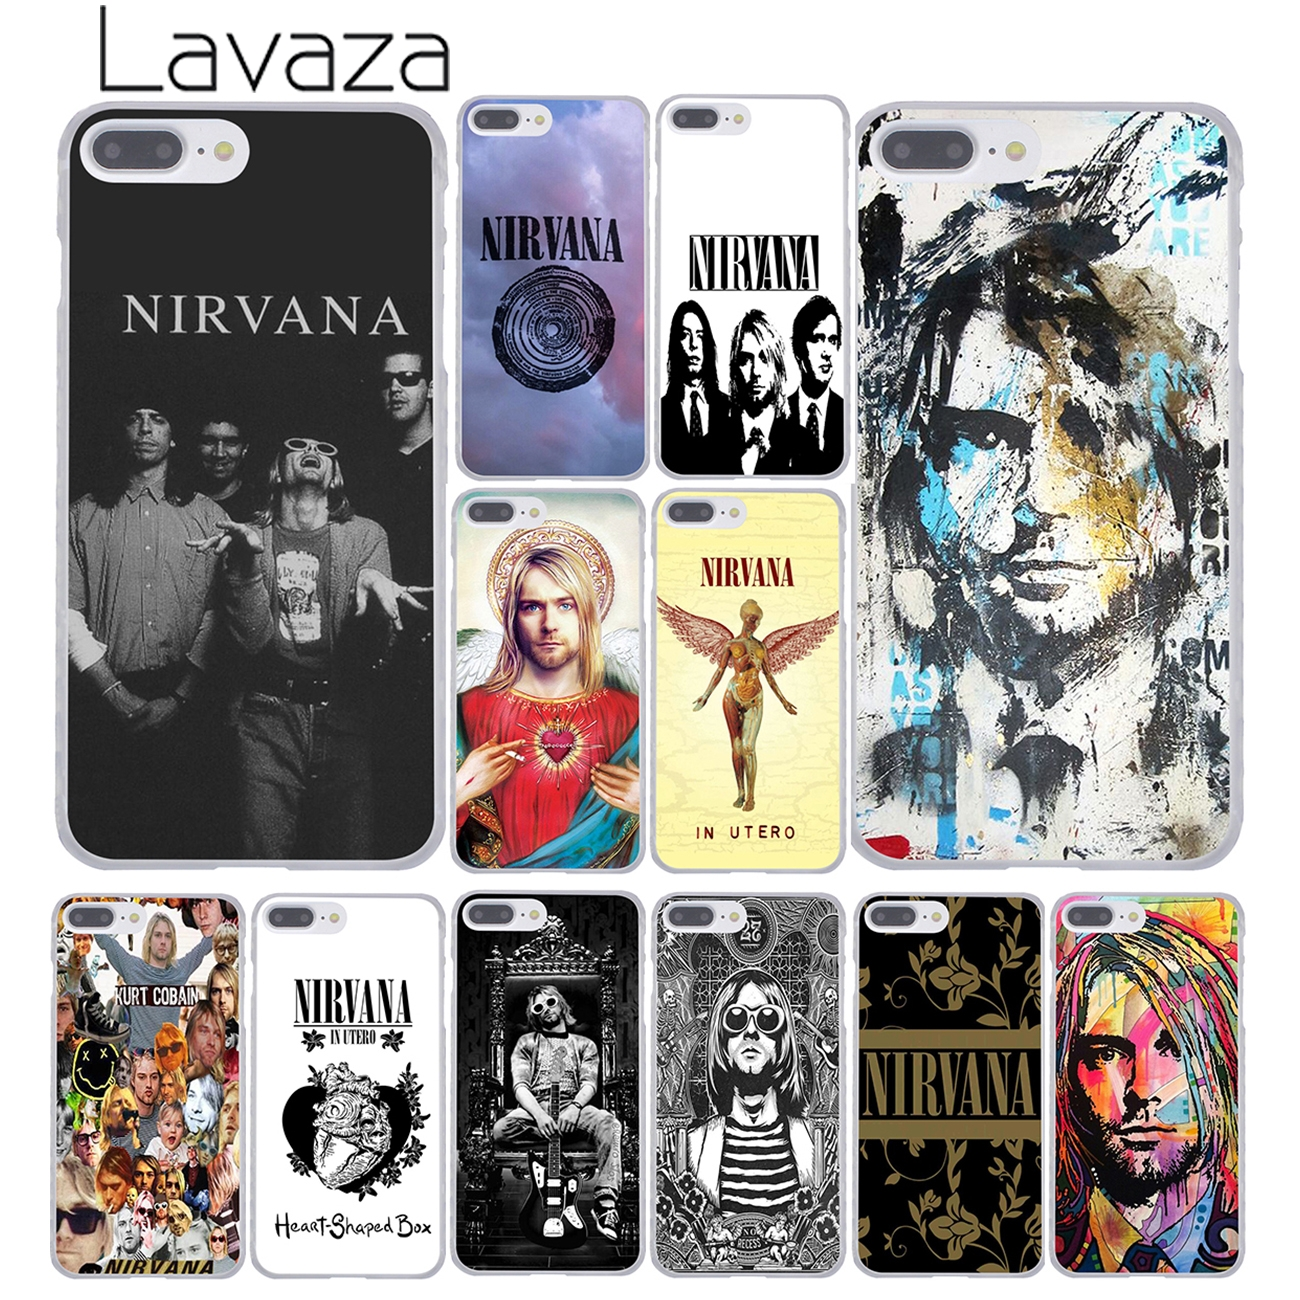 Lavaza Nirvana Kurt Cobain Hard Cover Case for Apple iPhone 8 7 6 6S Plus 5 5S SE 5C 4 4S X 10 Coque Shell